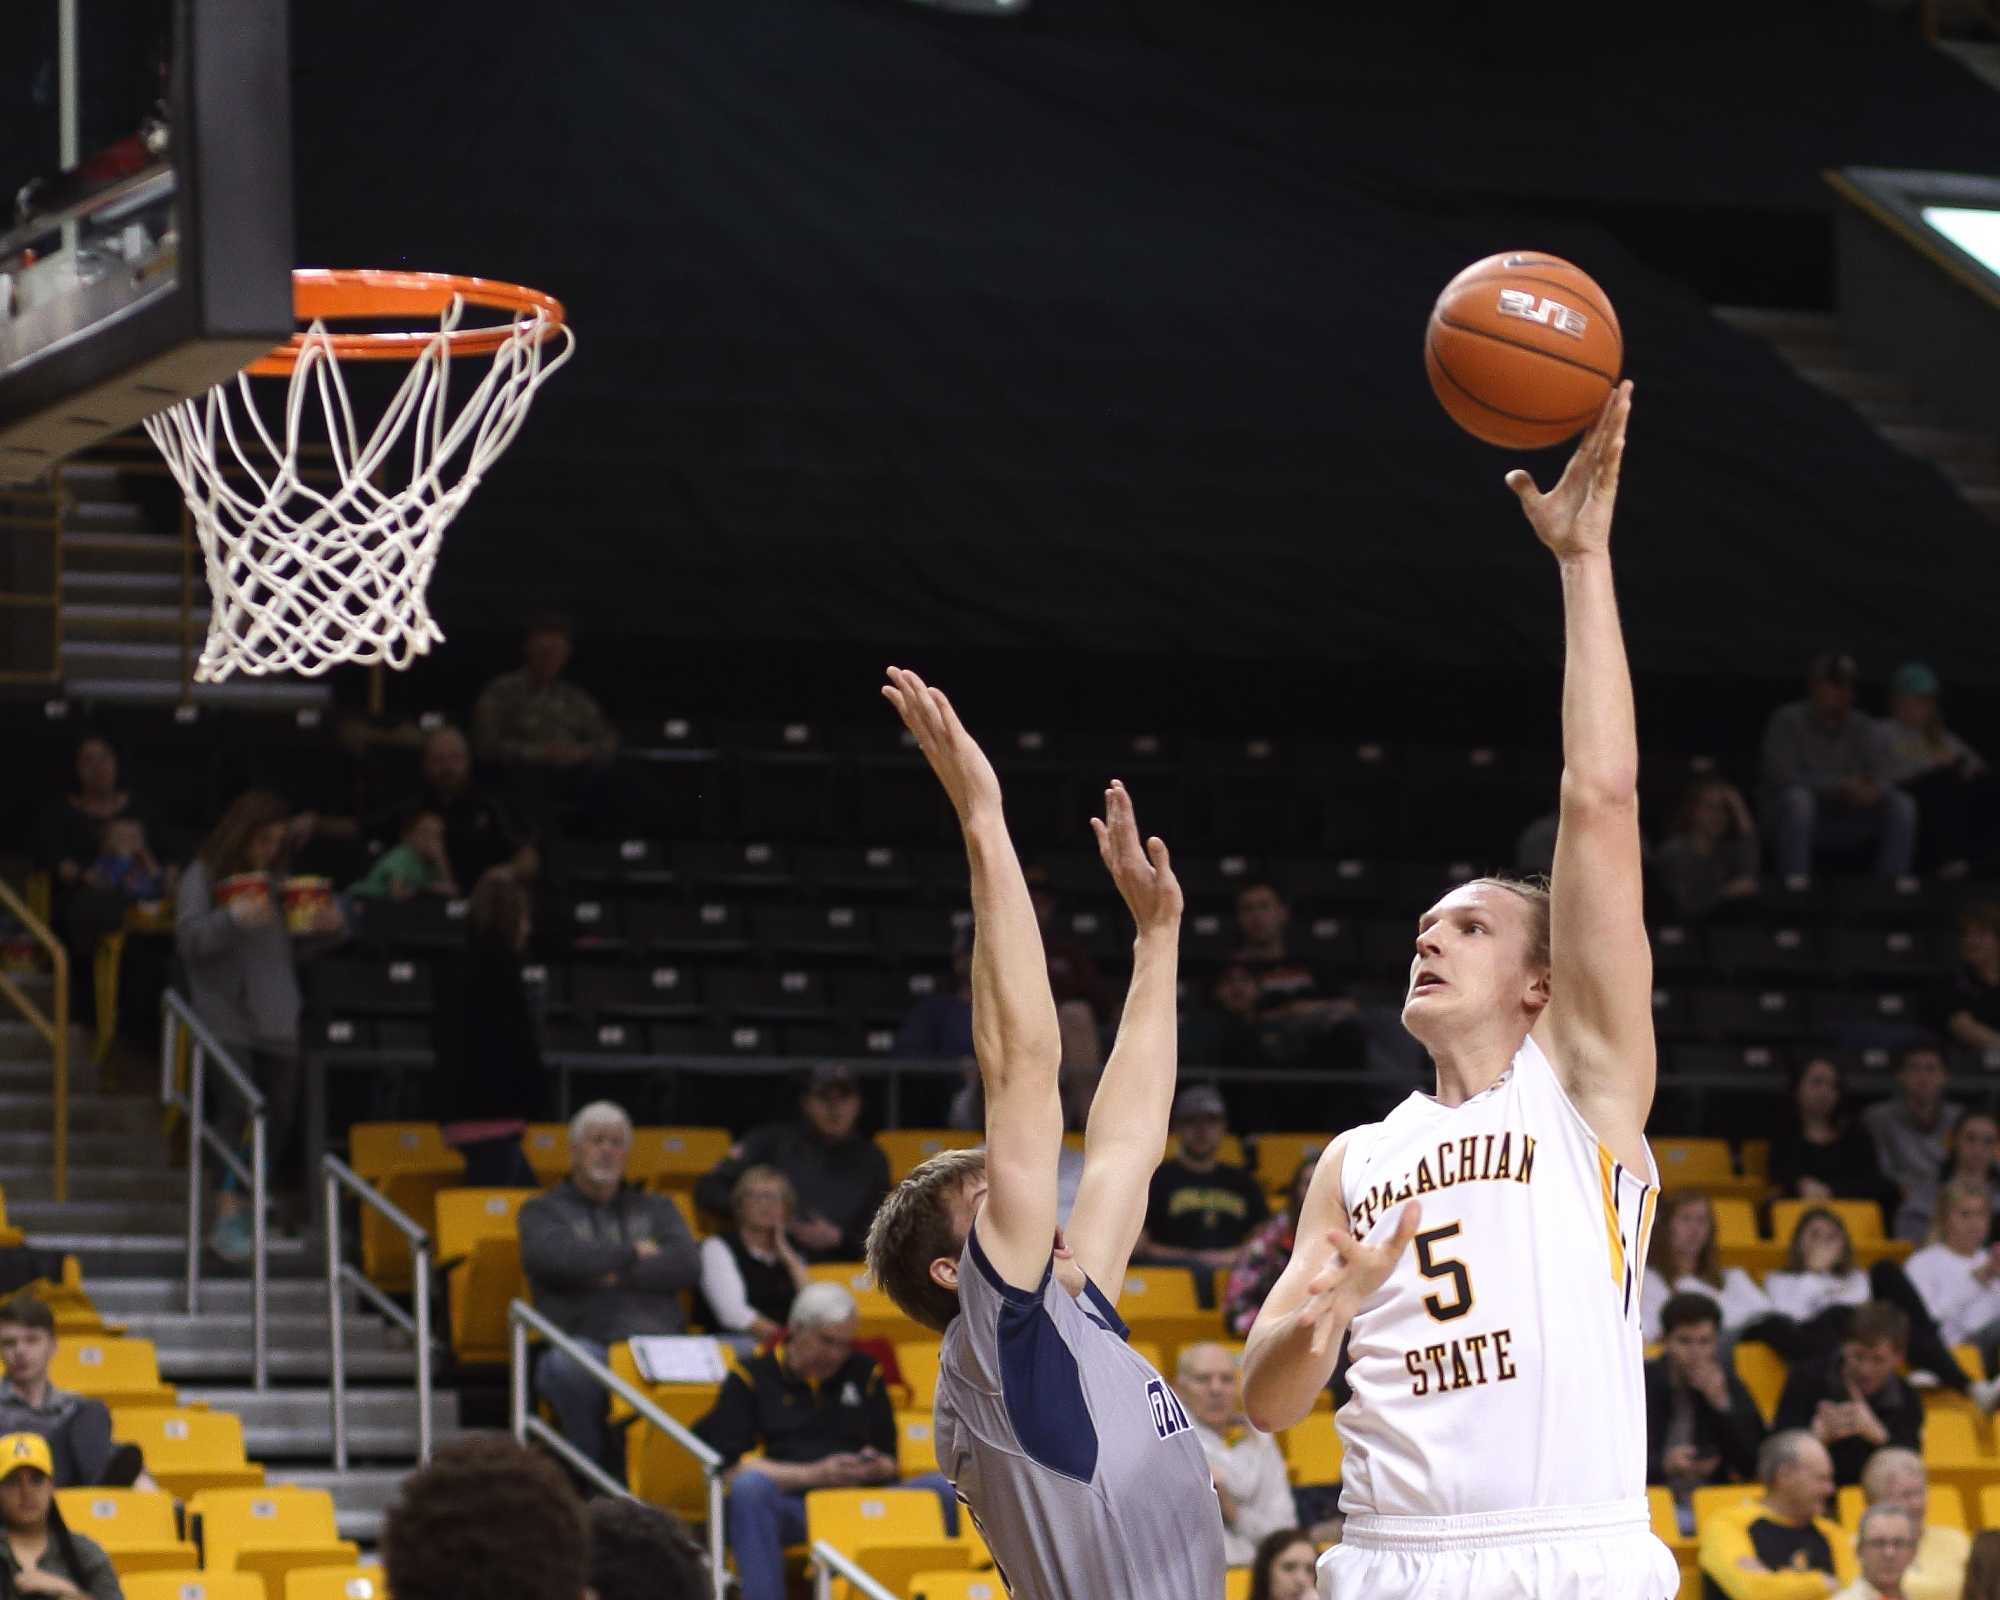 Forward+Griffin+Kinney+scored+a+career+high+25+points+in+App+State%27s+victory+over+Georgia+Southern.%0APhoto+courtesy%3A+Bill+Sheffield%2FApp+State+Athletics